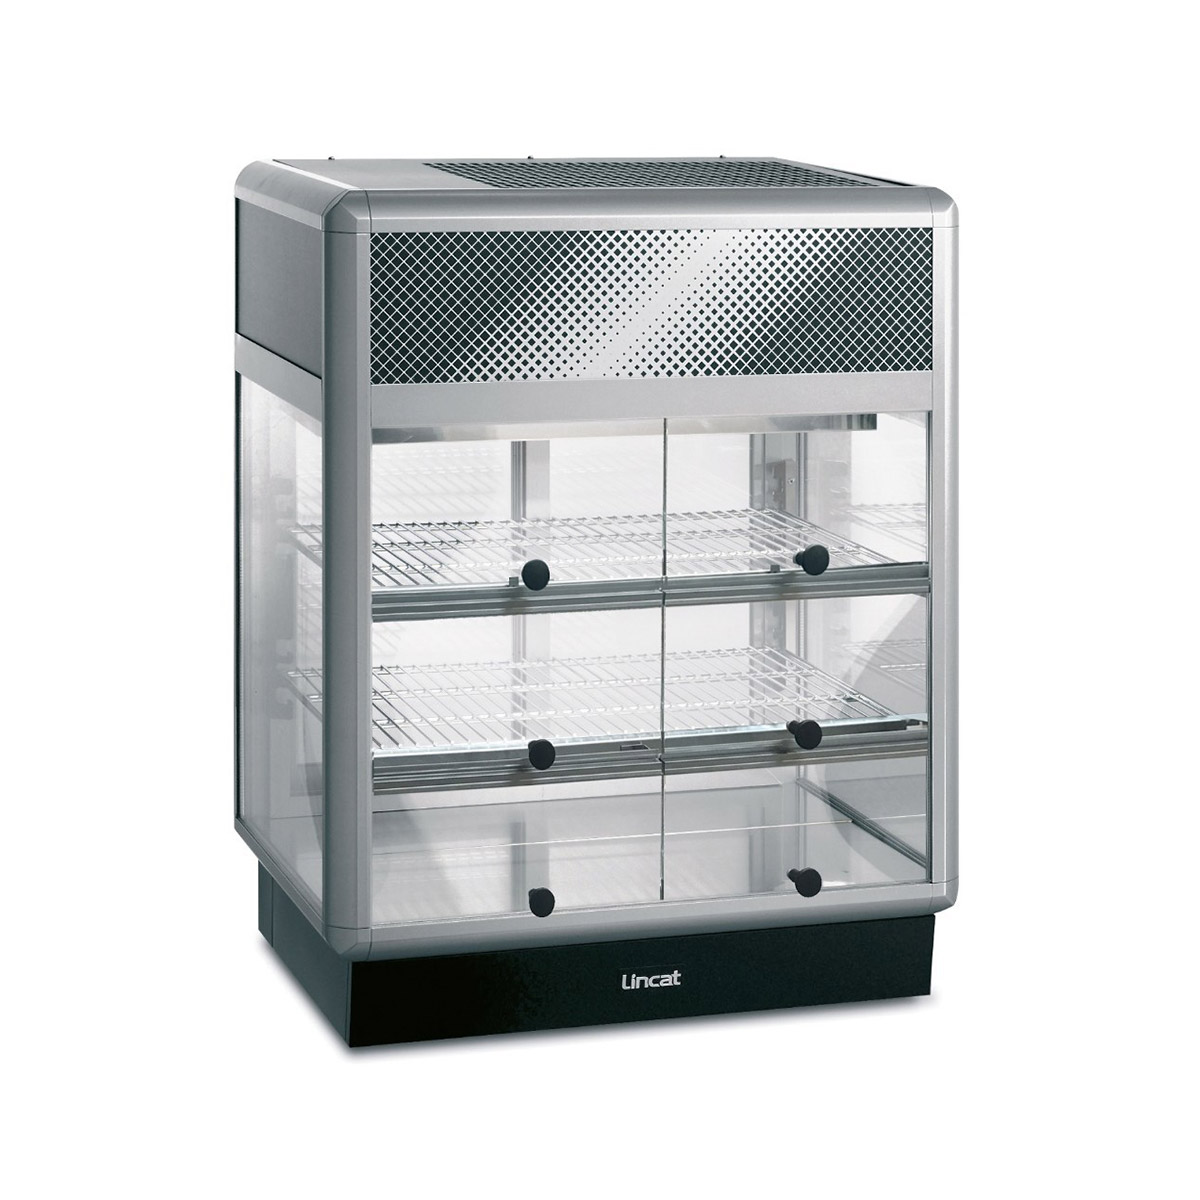 D6R/75S - Lincat Seal 650 Series Counter-top Rectangular Front Refrigerated Merchandiser - Self-Service - W 750 mm - 0.6 kW